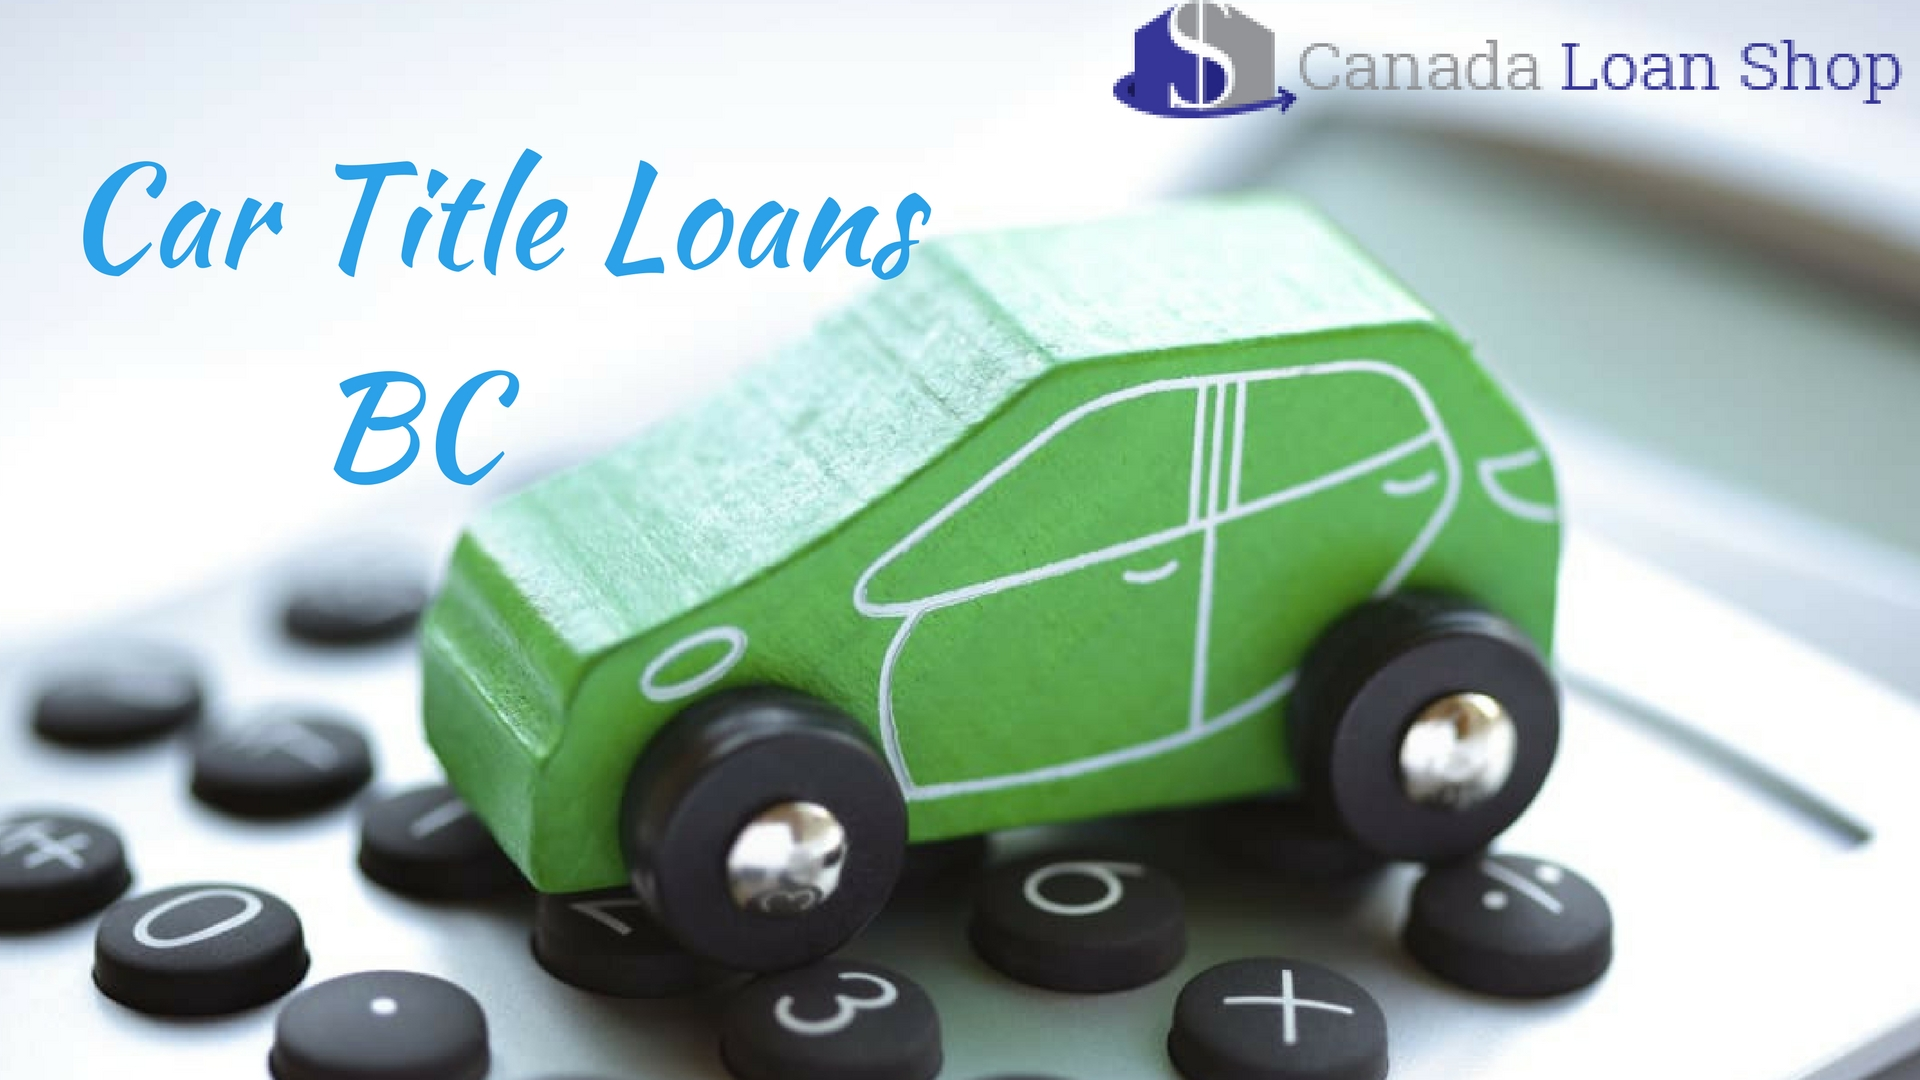 What Documents Do You Need to Get a Car Title Loan?